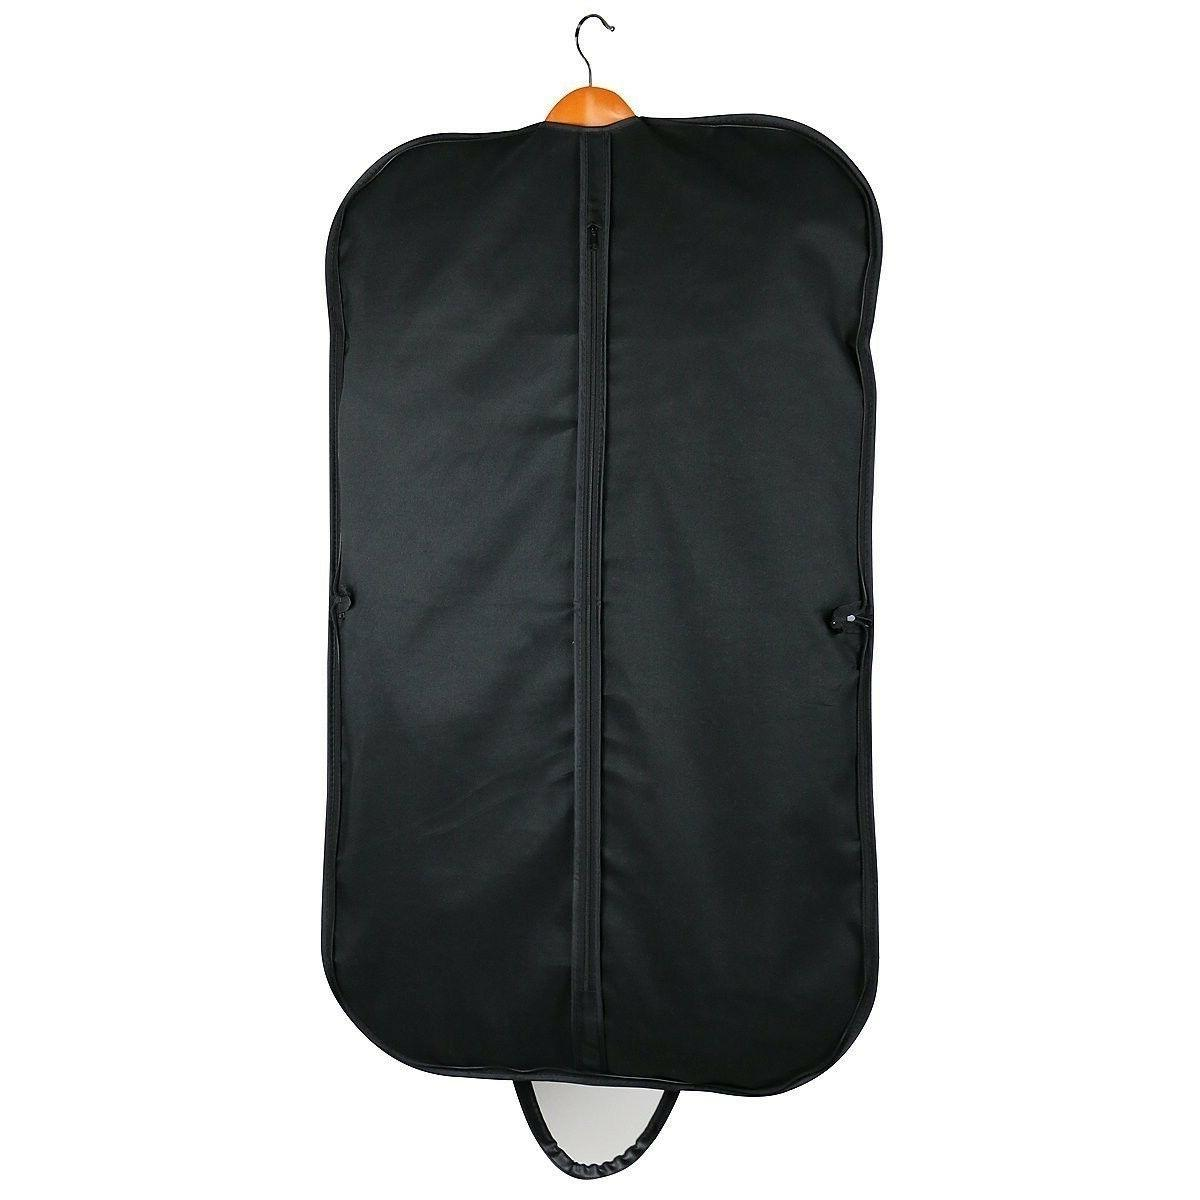 Hanging Garment Bag Hang Up Travel Cover Carrier Suits